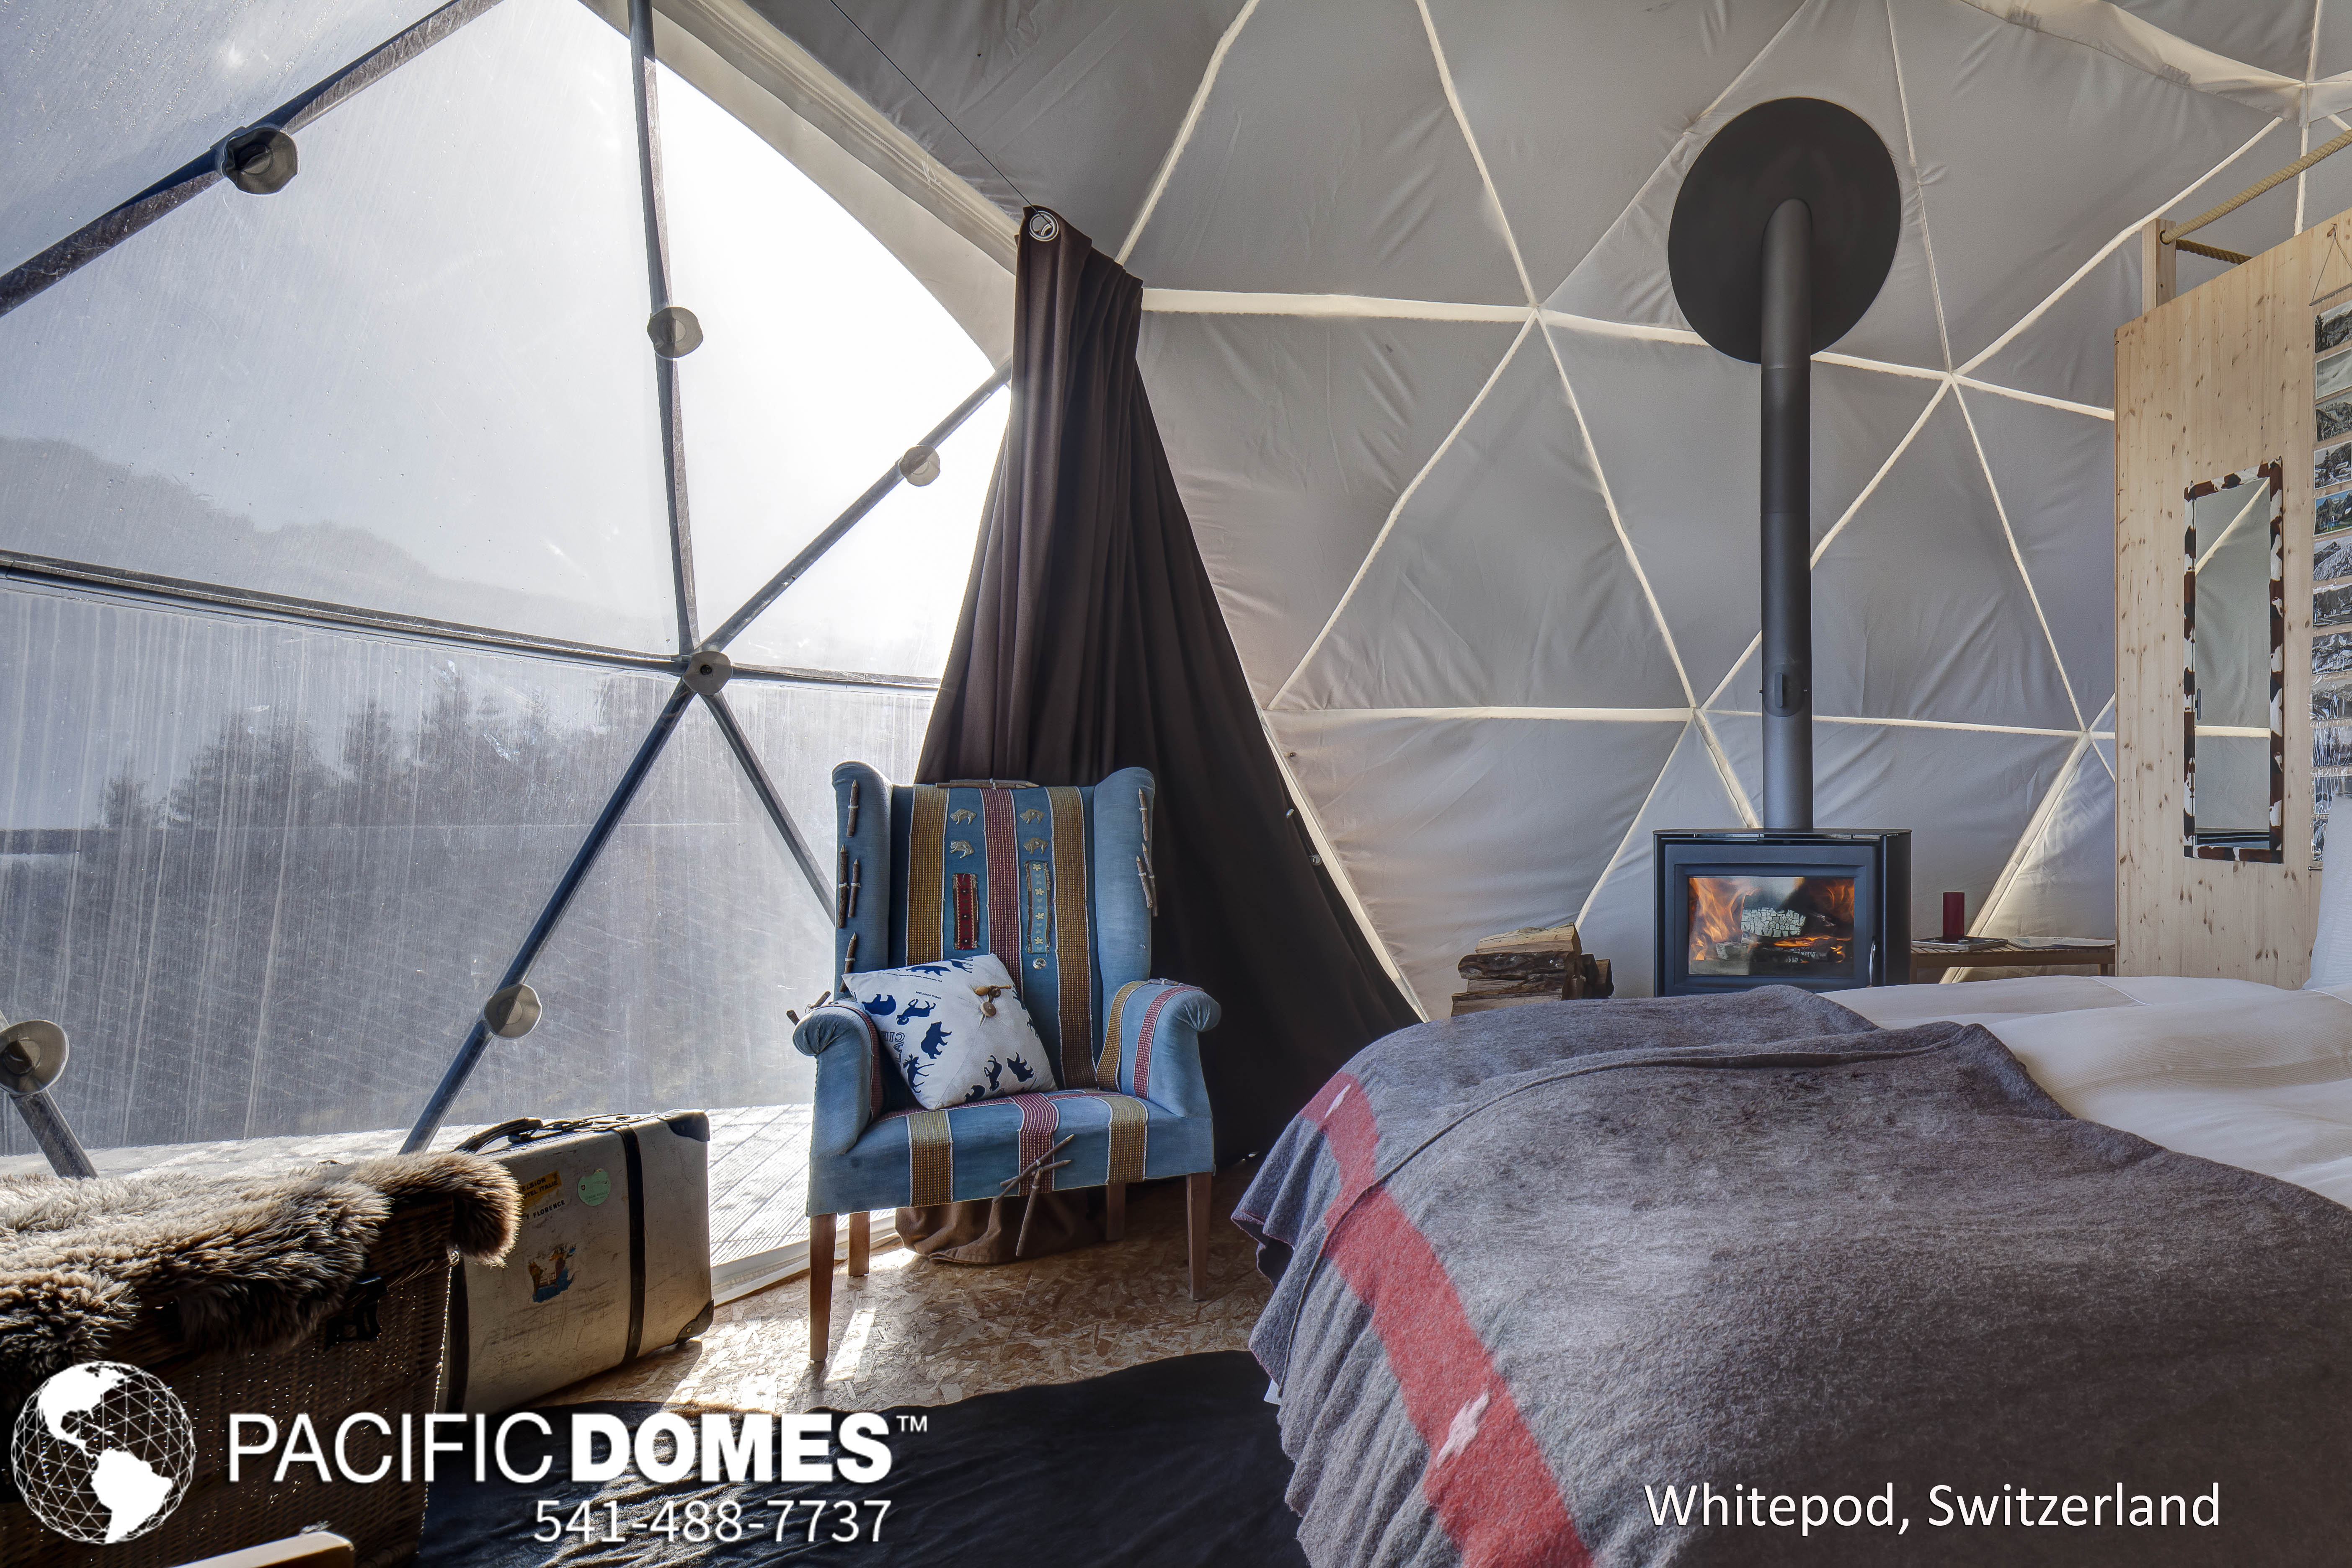 price dome homes, tiny dome houses, ecodomes. prices of dome homes